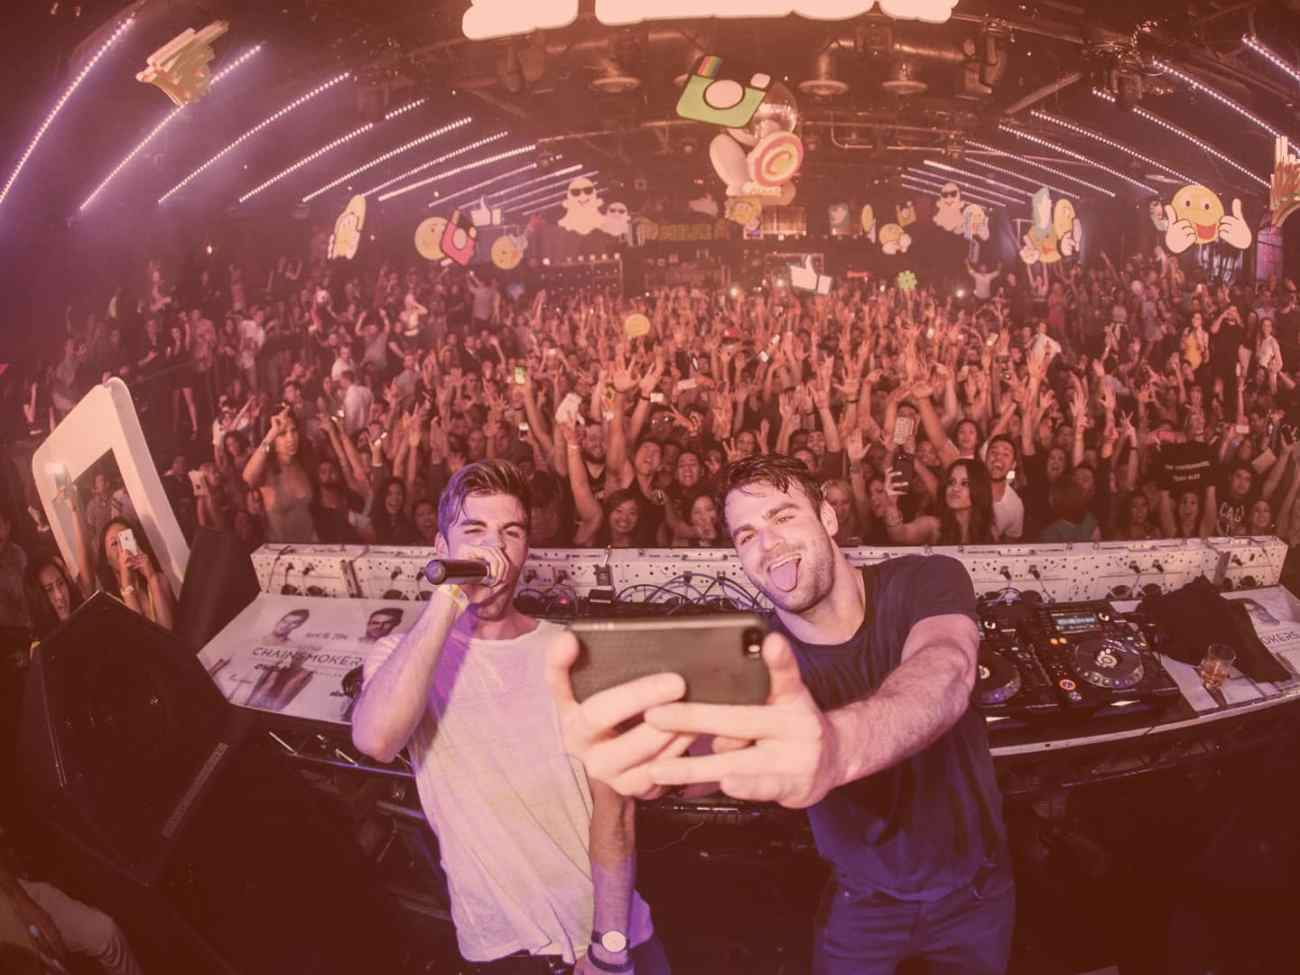 The Chainsmokers live